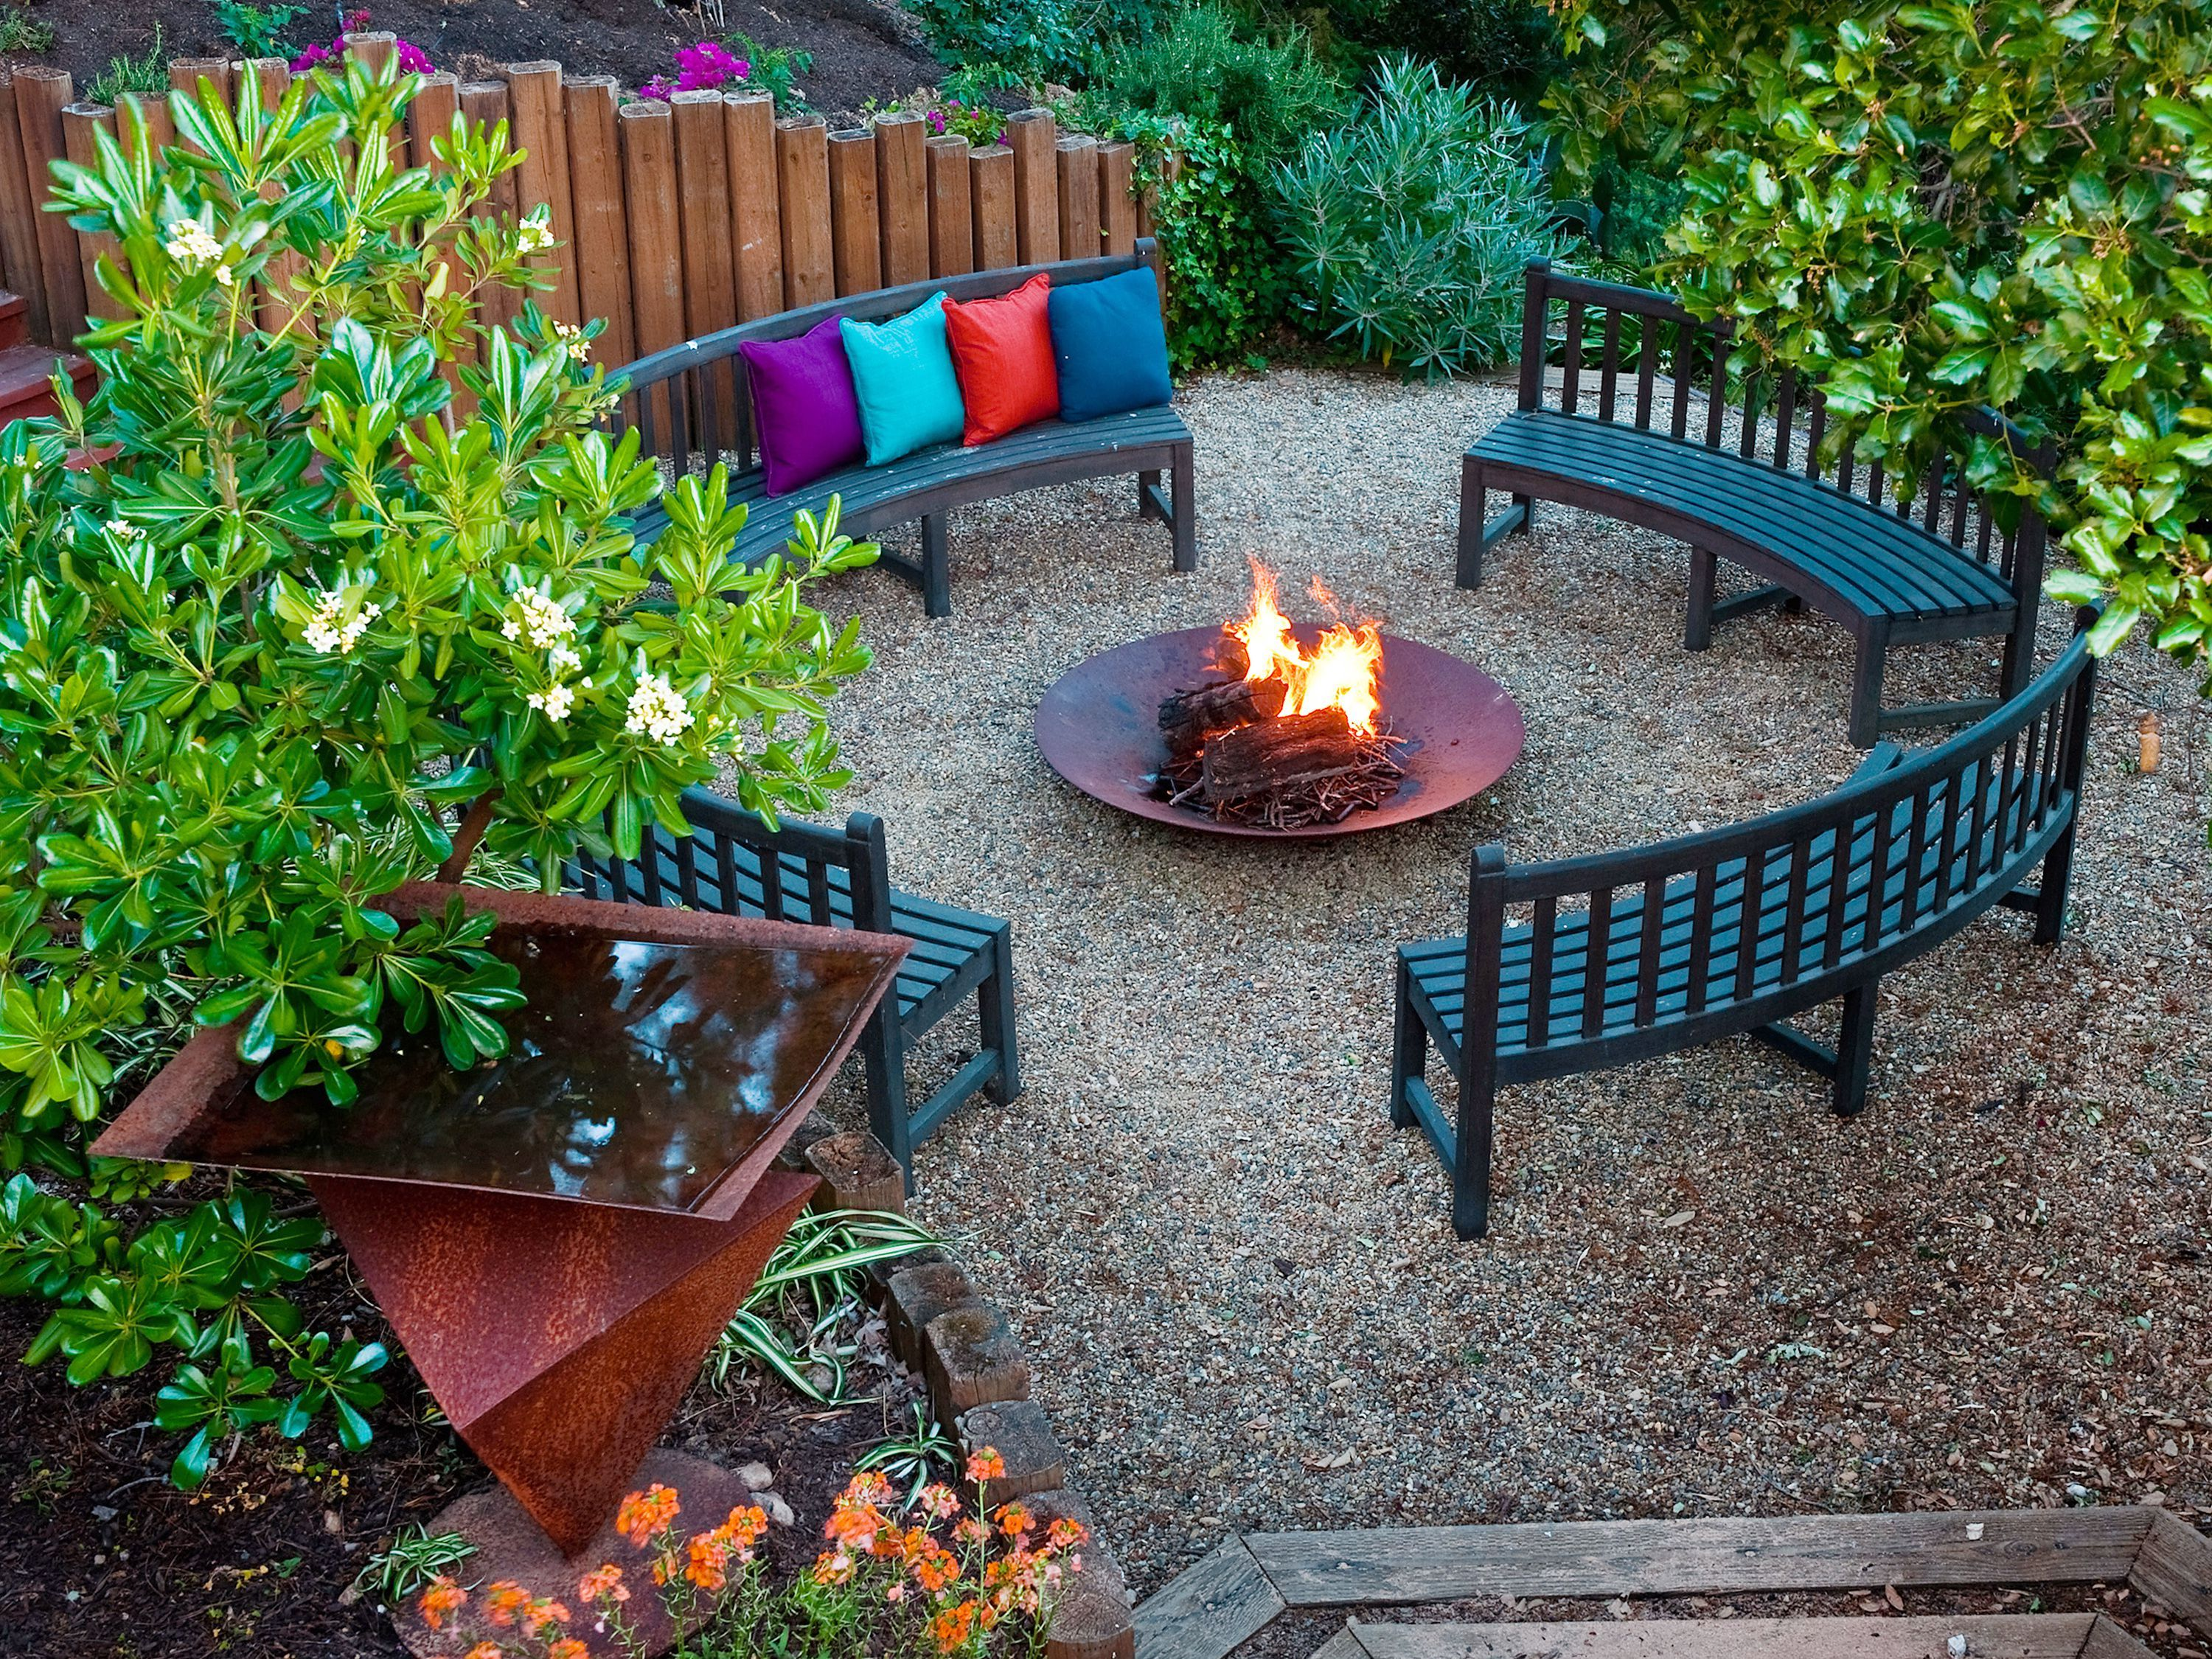 incredible backyard garden design with wooden fences bonfire